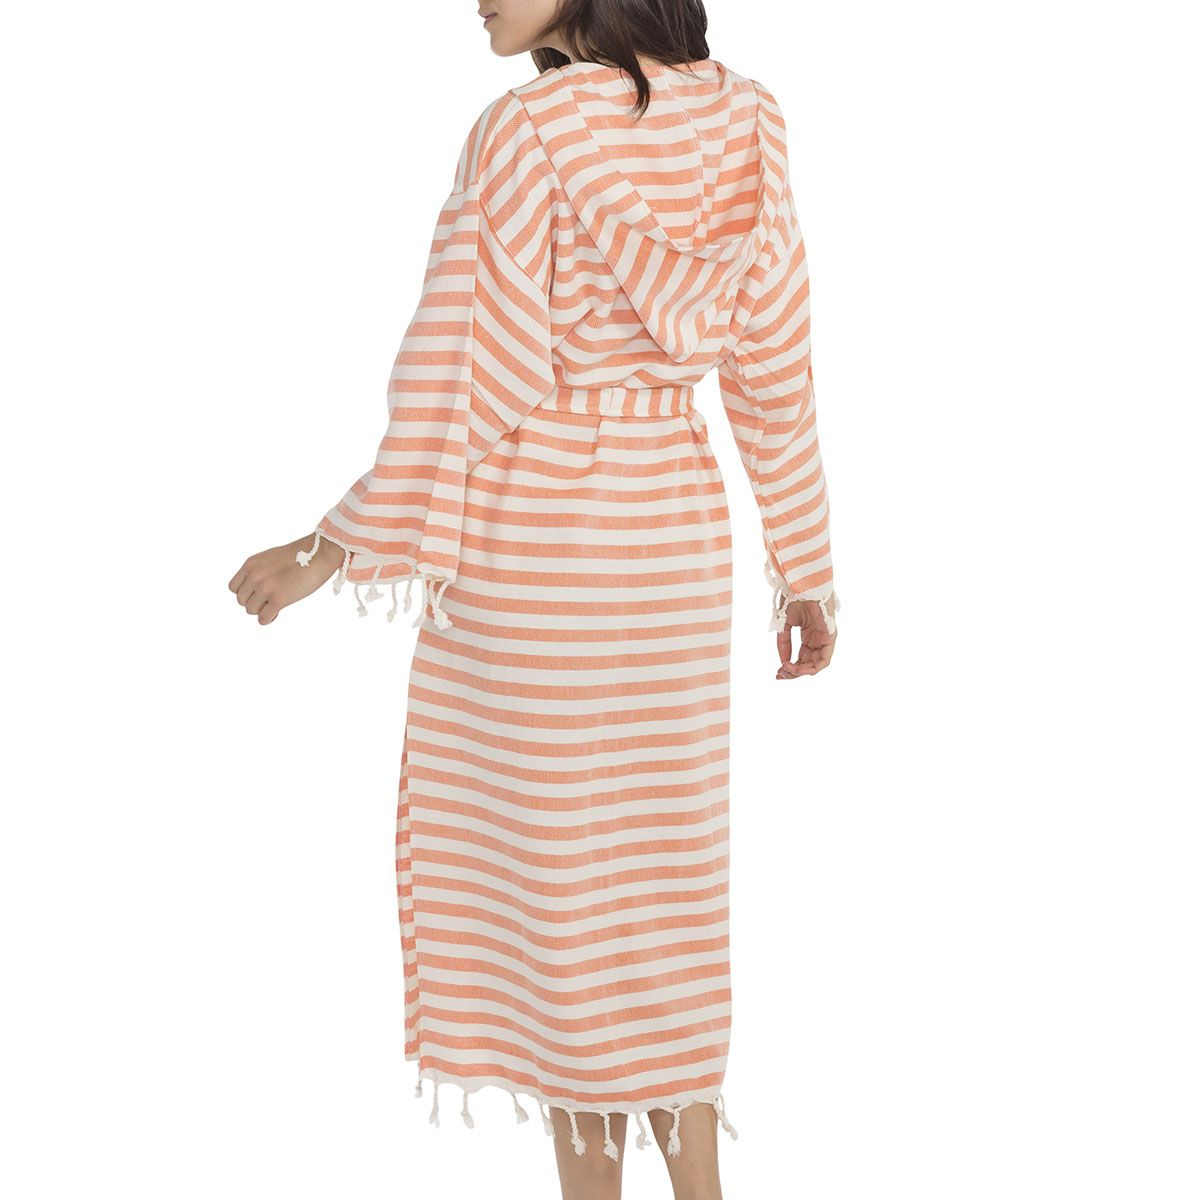 Bathrobe Santuri - Orange